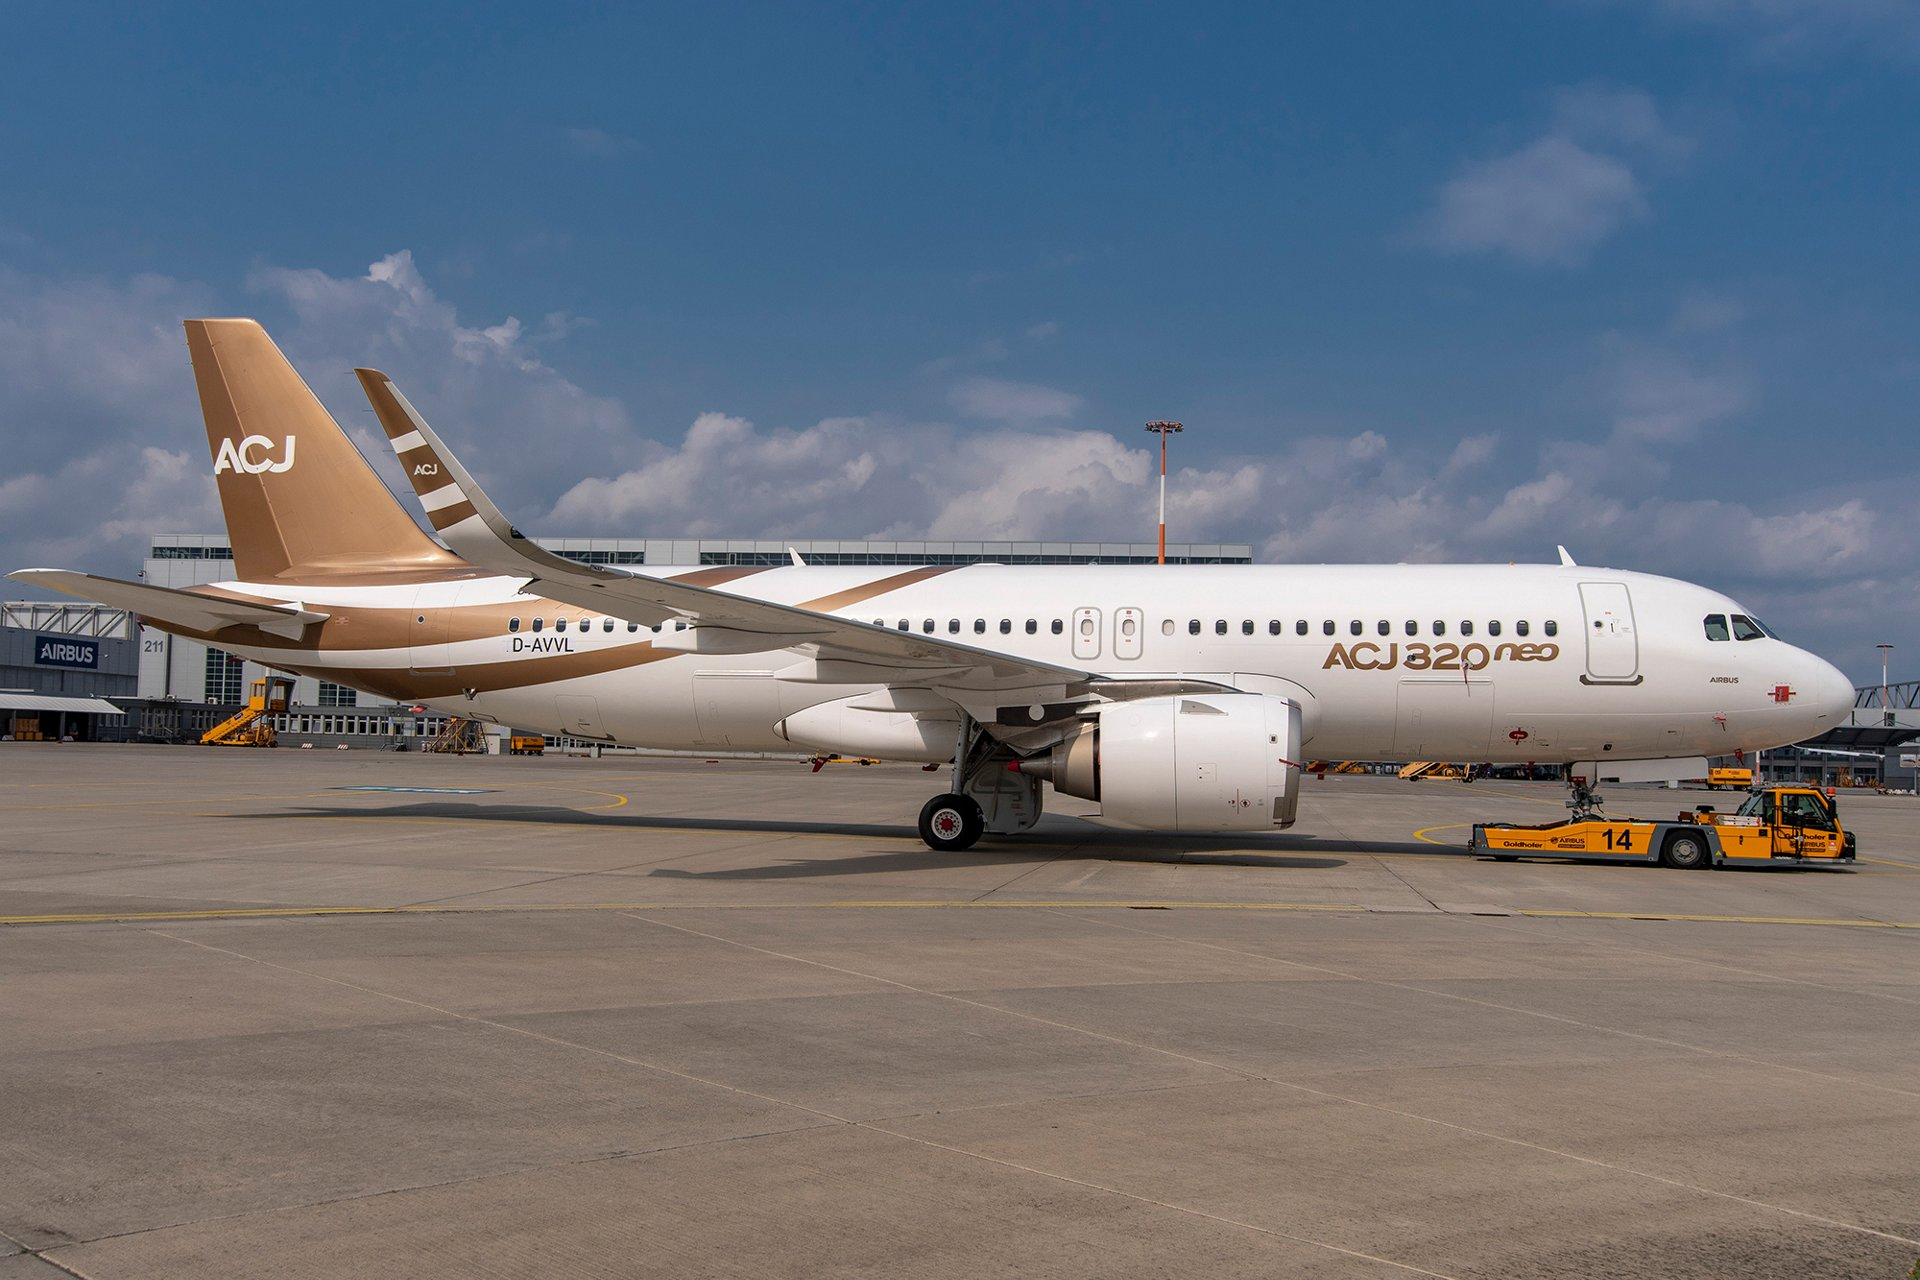 First Airbus Corporate Jets ACJ320neo is assembled